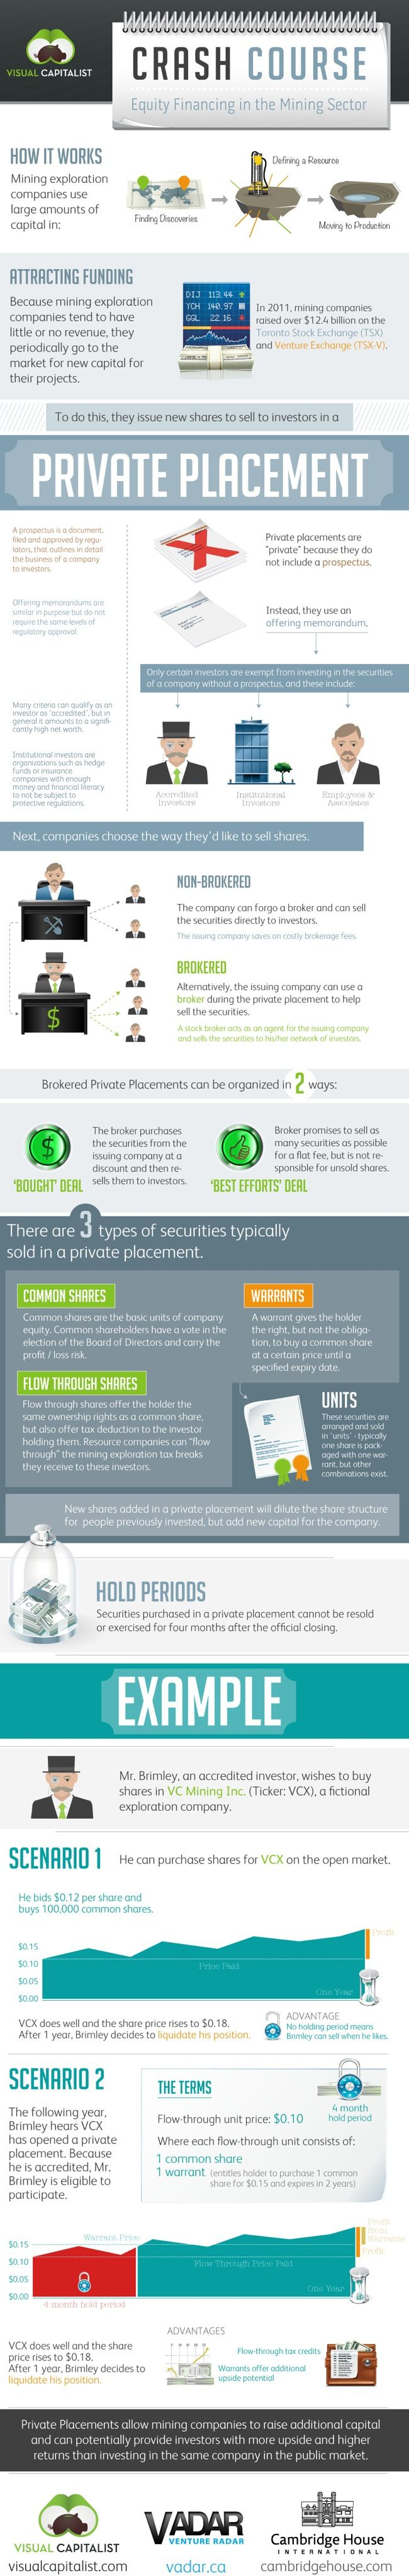 17 best Infographic images on Pinterest | Infographic, Infographics ...